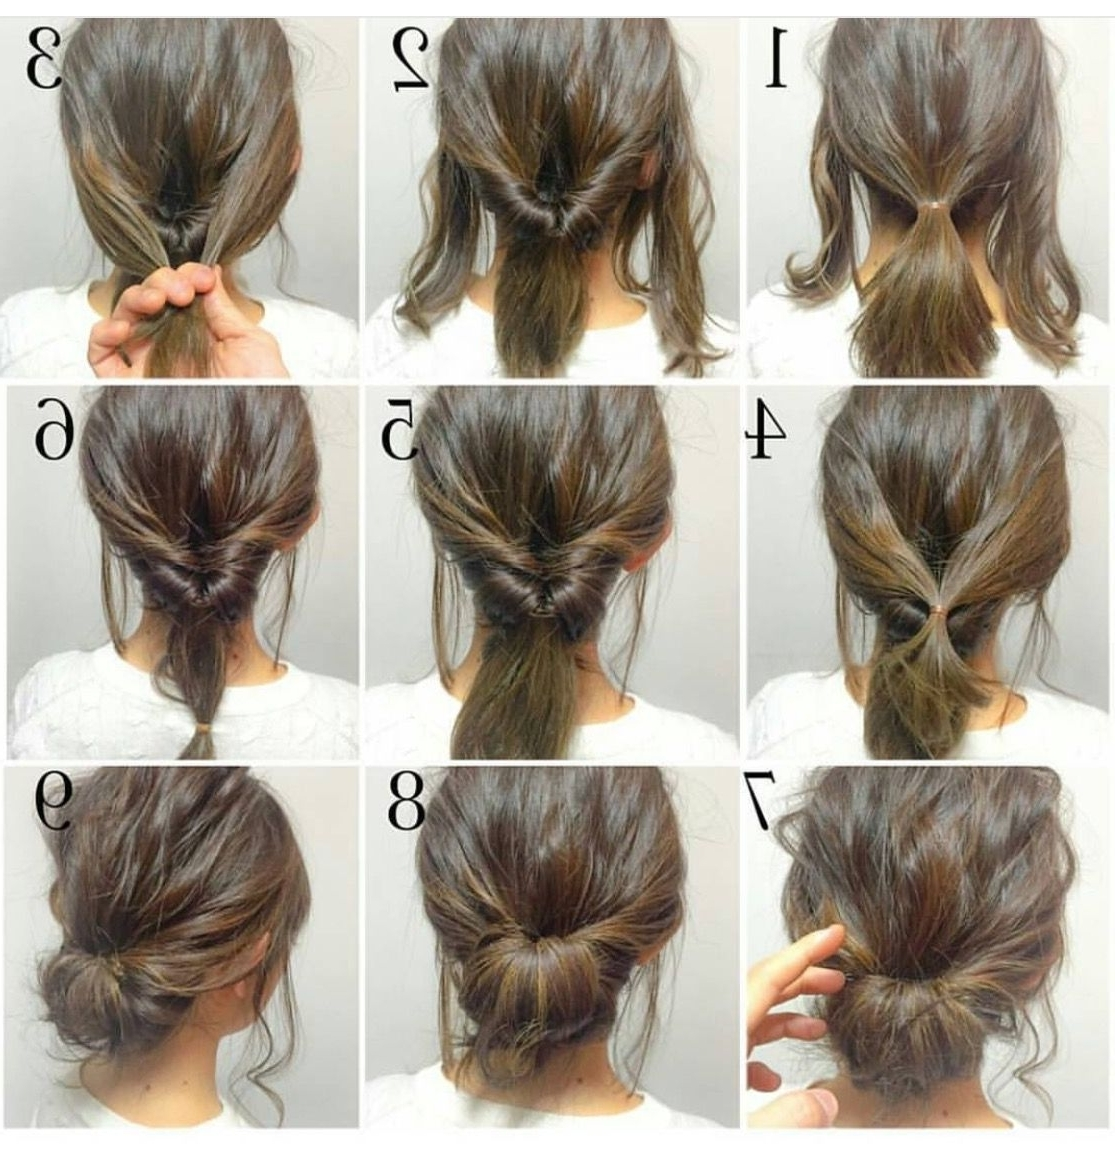 Most Recent Simple Wedding Hairstyles For Bridesmaids For Easy, Hope This Works Out Quick Morning Hair! (View 7 of 15)